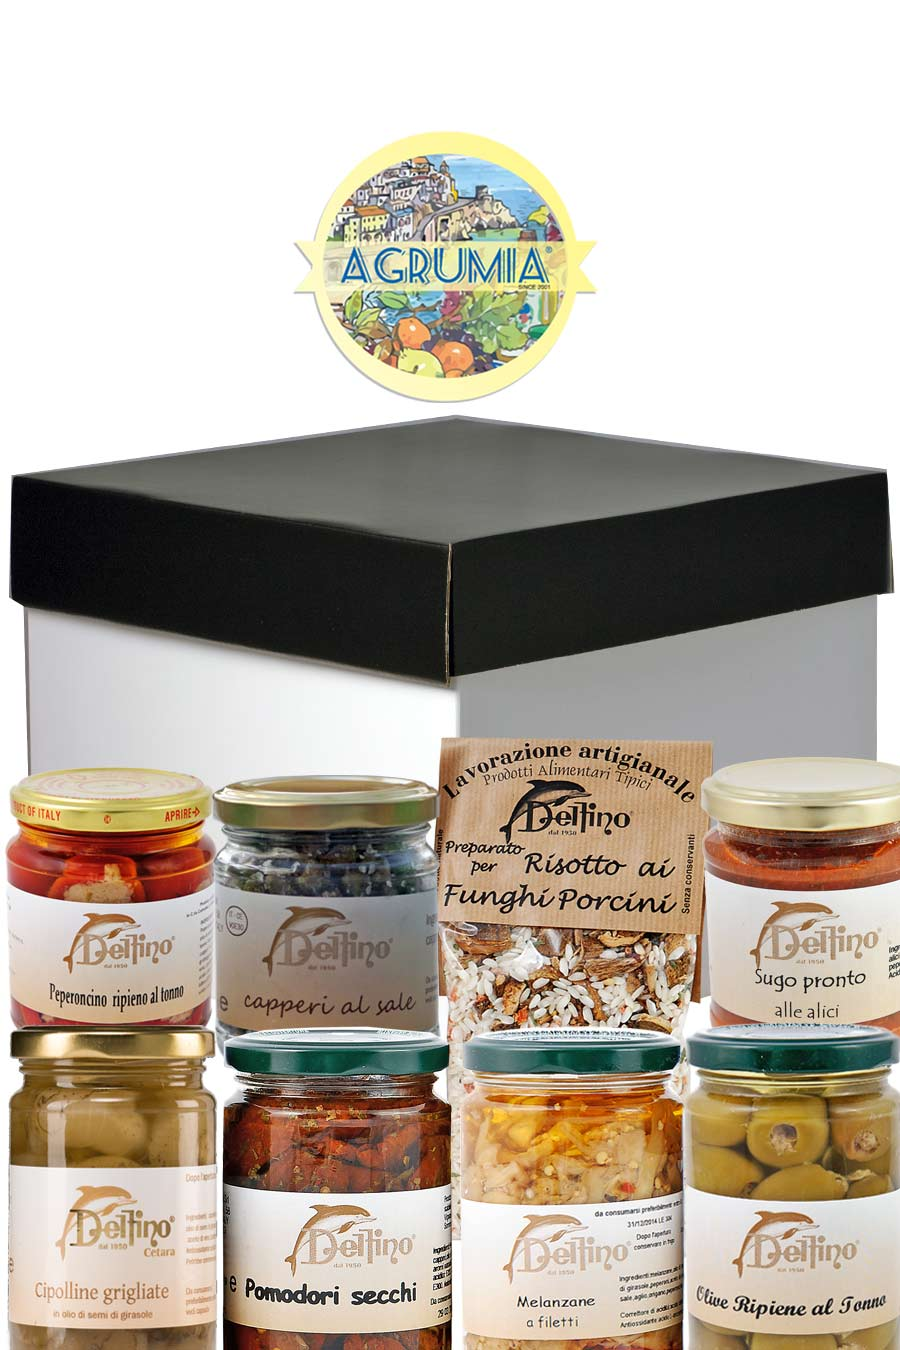 The Italian Antipasti Hamper